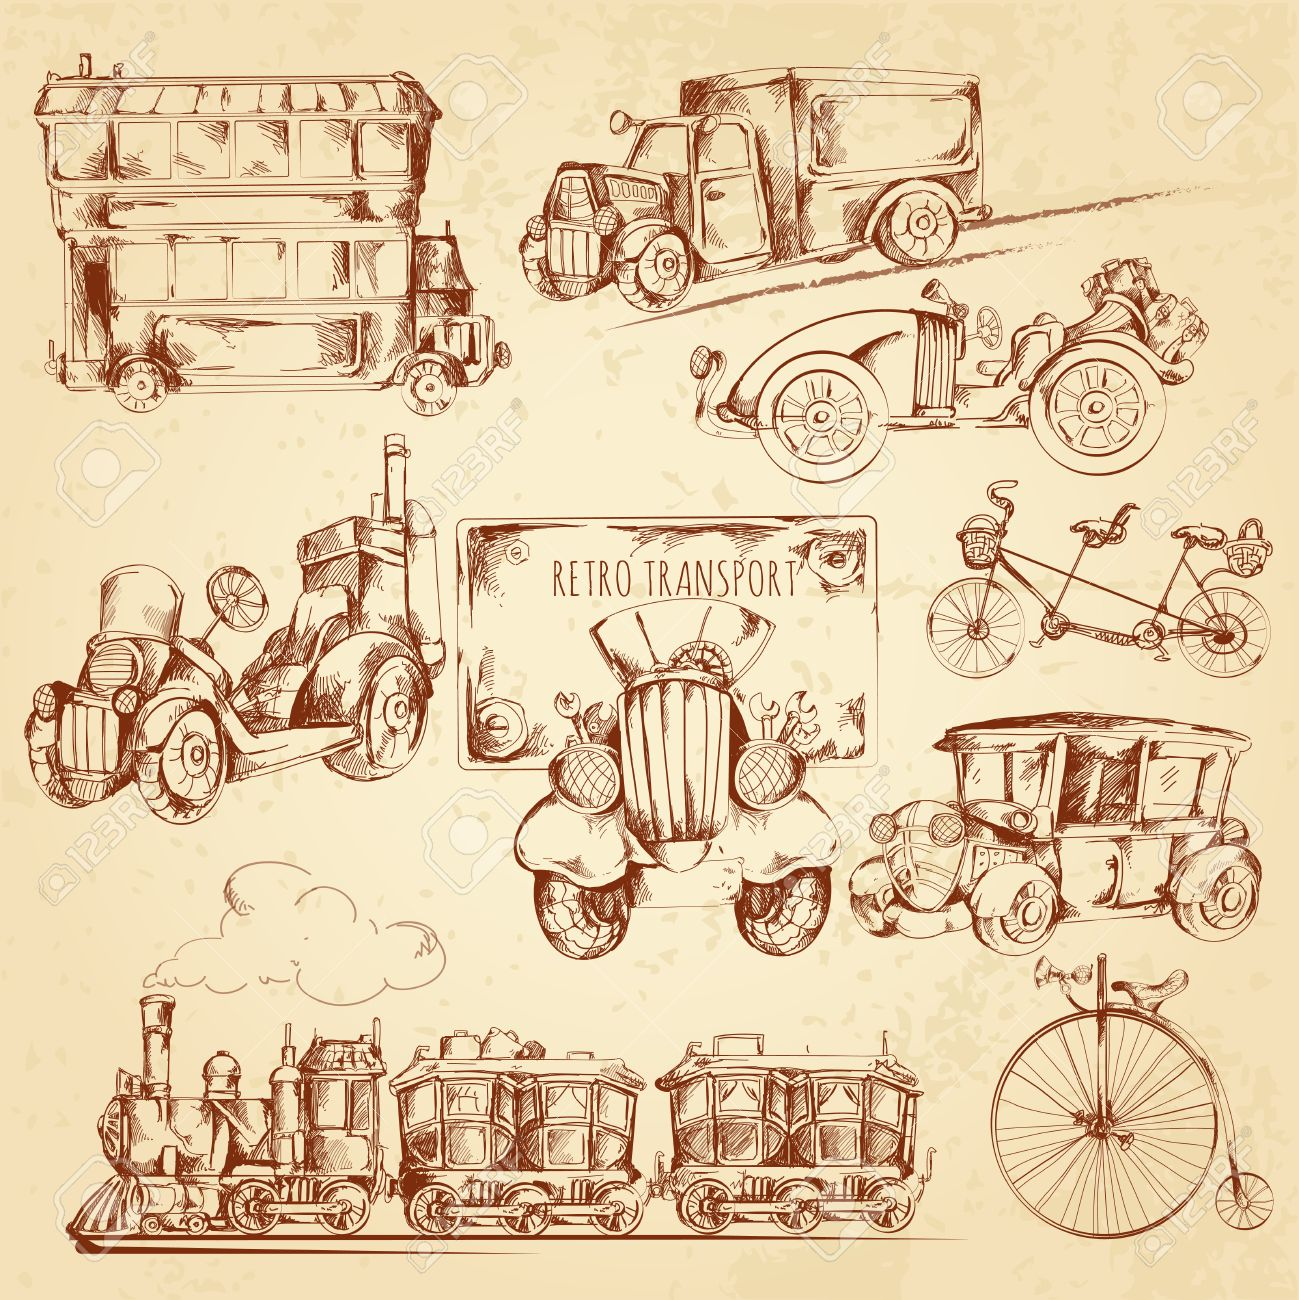 Vintage Transport Steampunk Vehicles Sketch Decorative Icons Set Isolated Vector Illustration Royalty Free Cliparts Vetores E Ilustracoes Stock Image 38305543